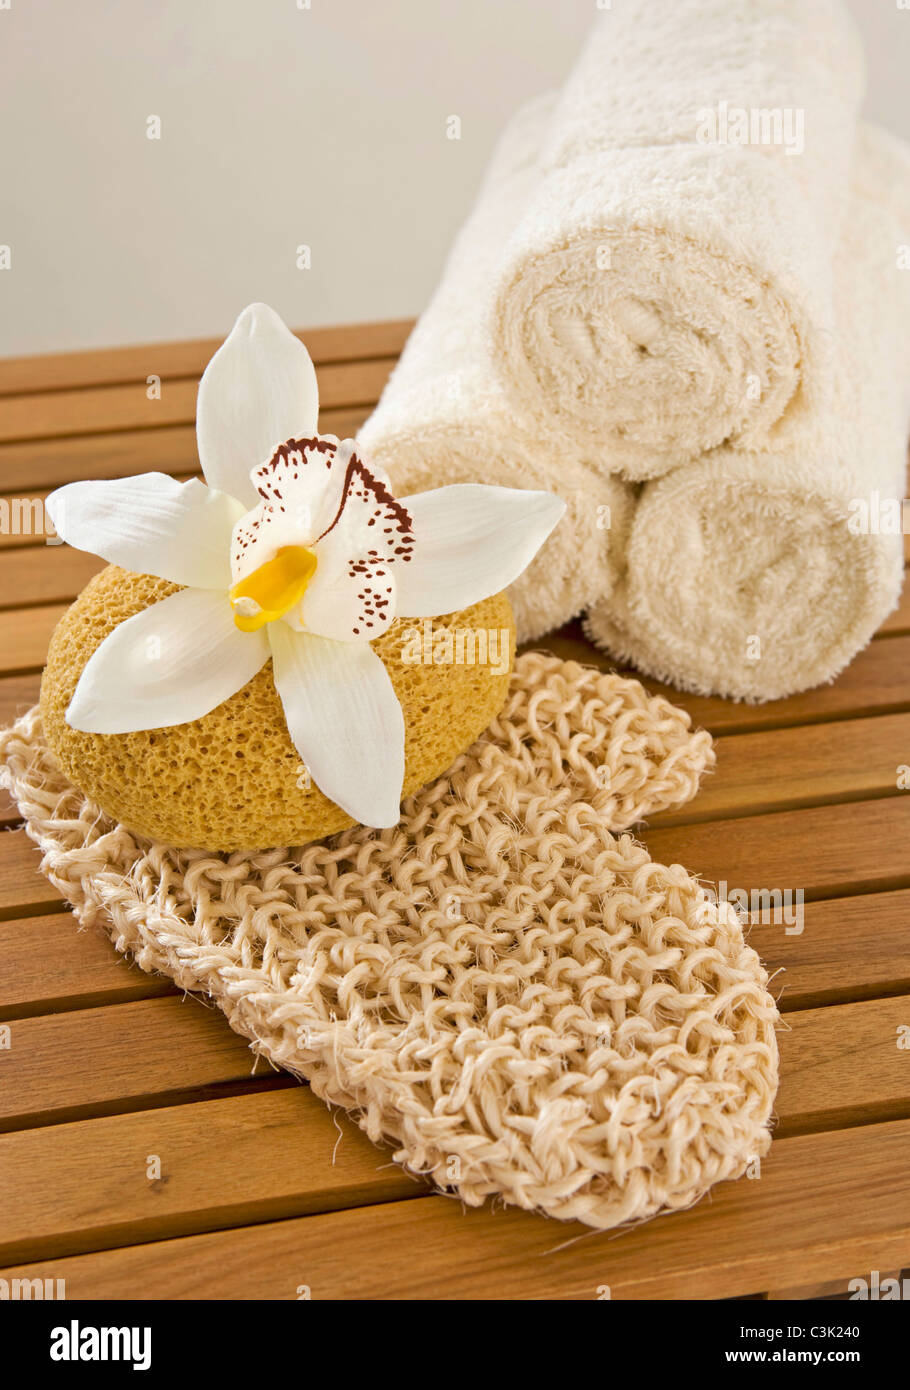 Bath sponge and rolled up towels, close up - Stock Image